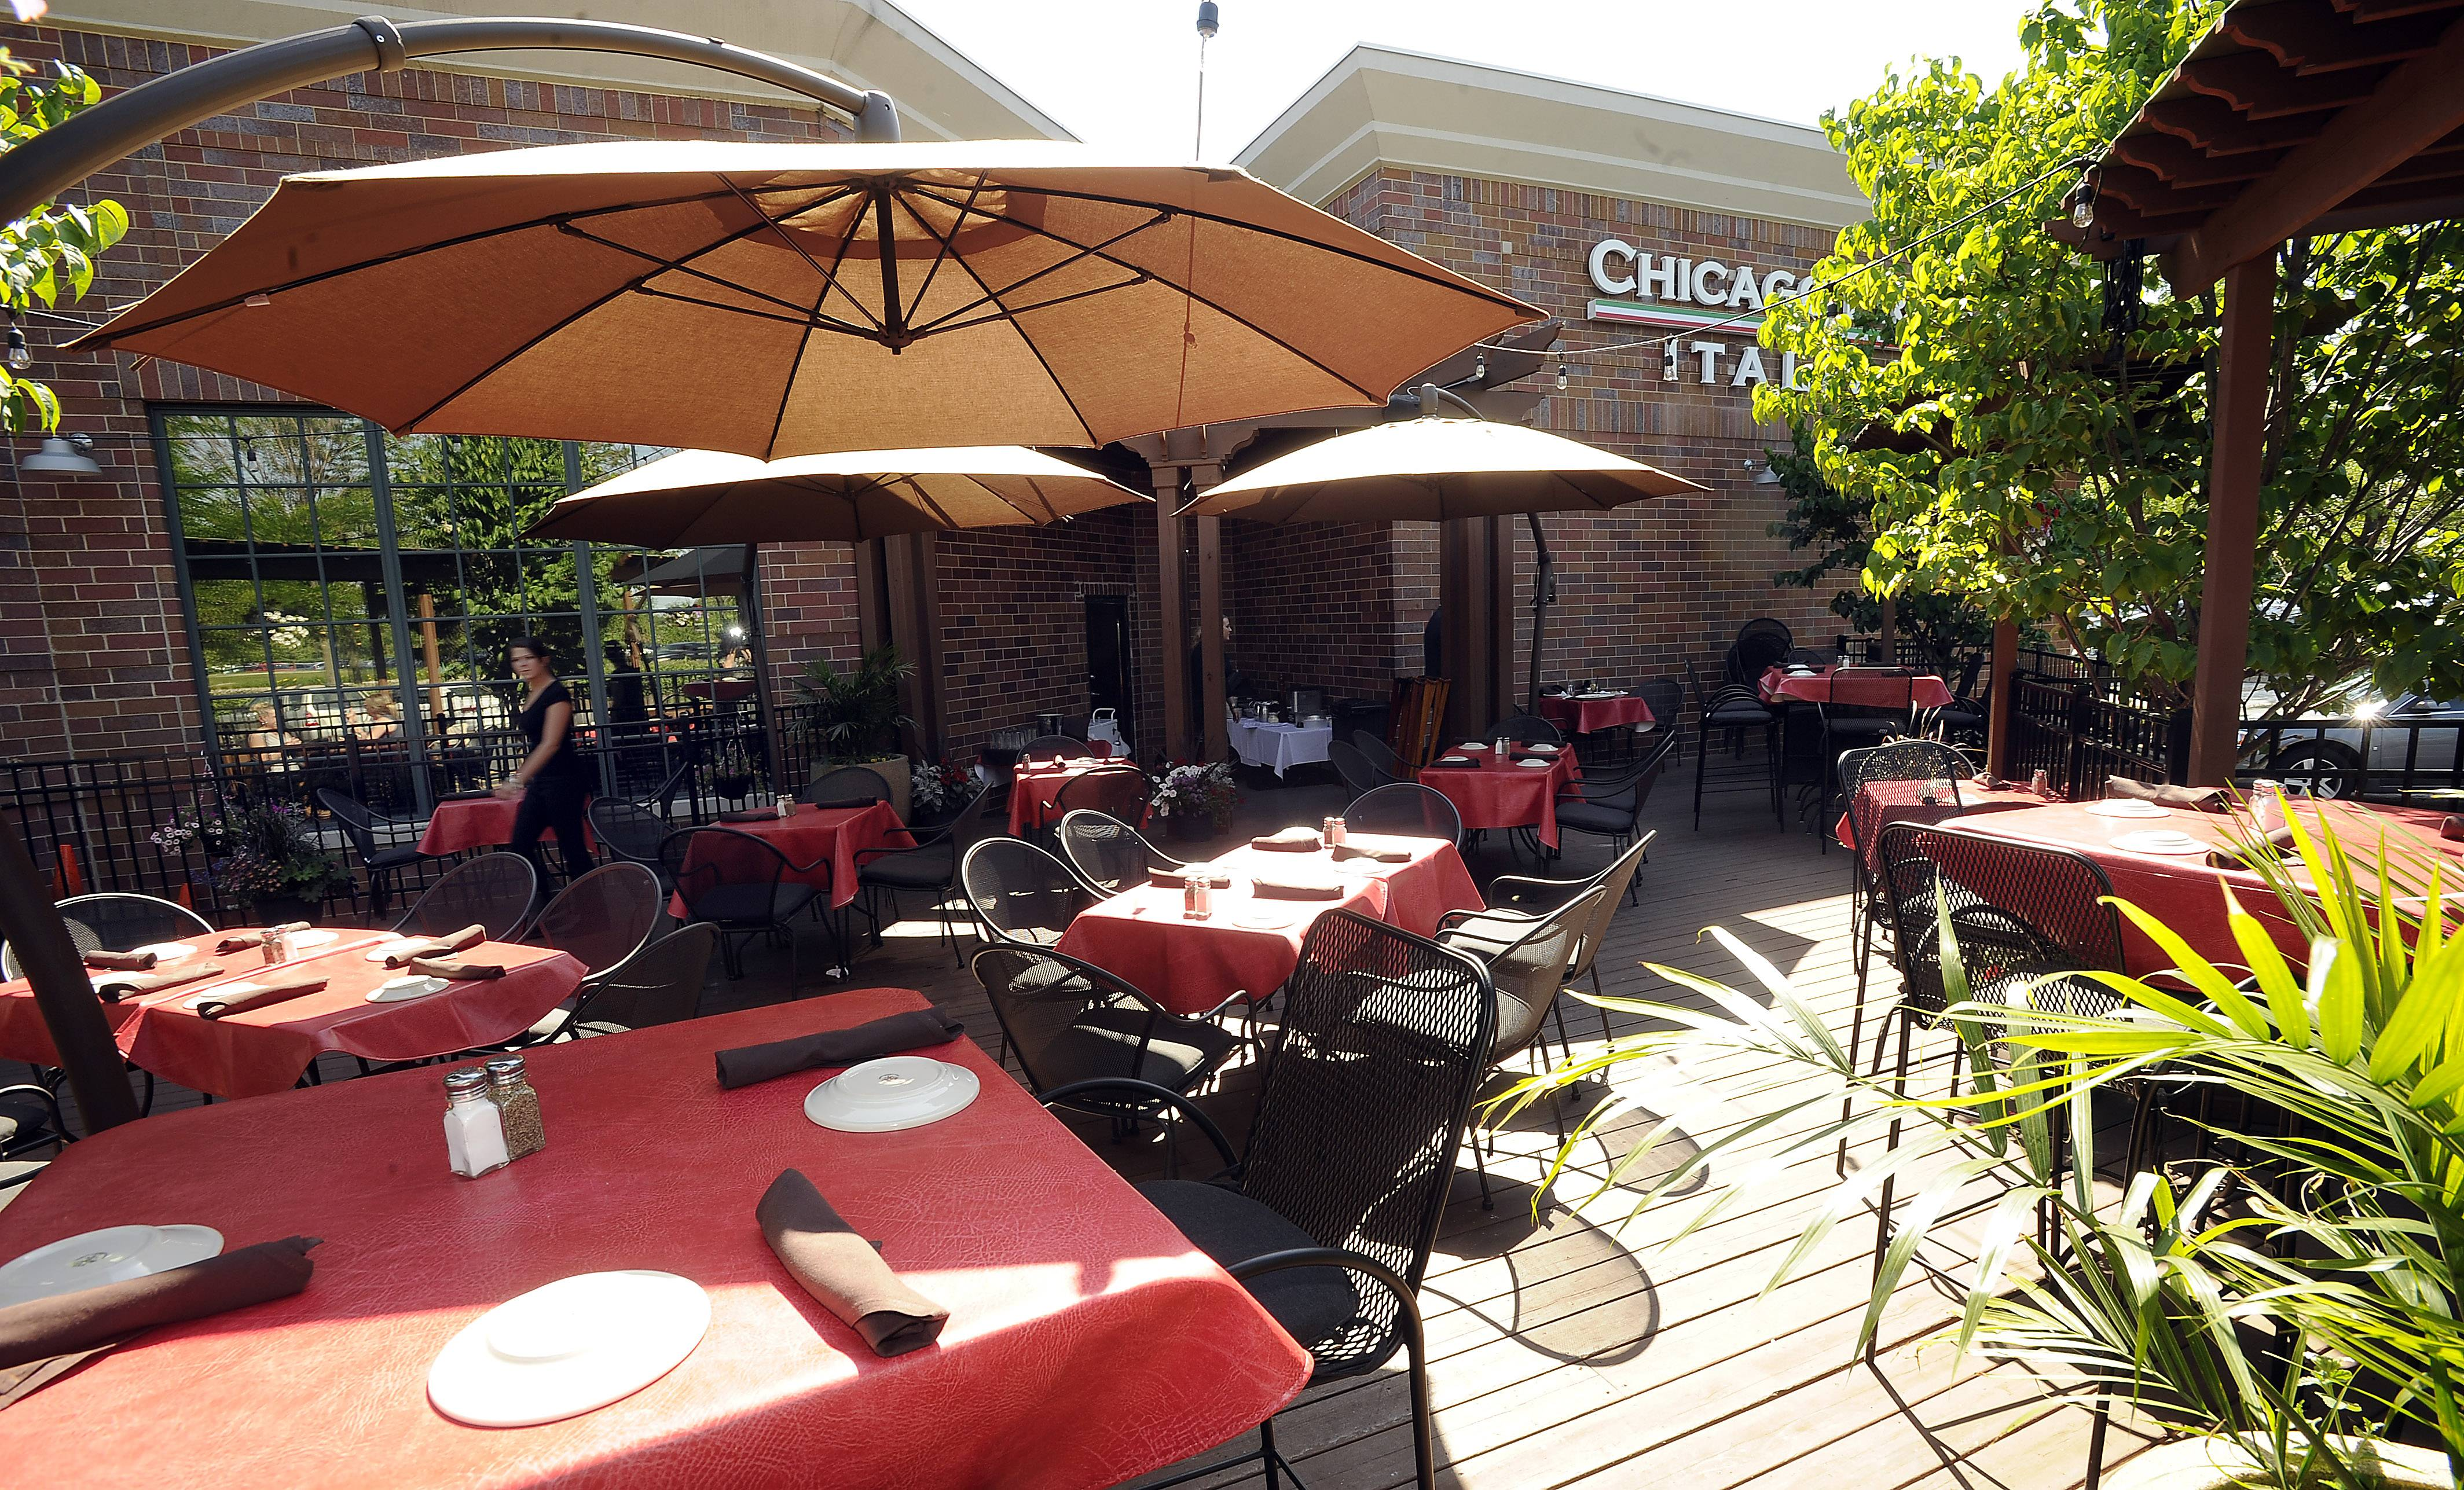 Chicago Prime Italian's outdoor patio welcomes diners for a leisurely meal.